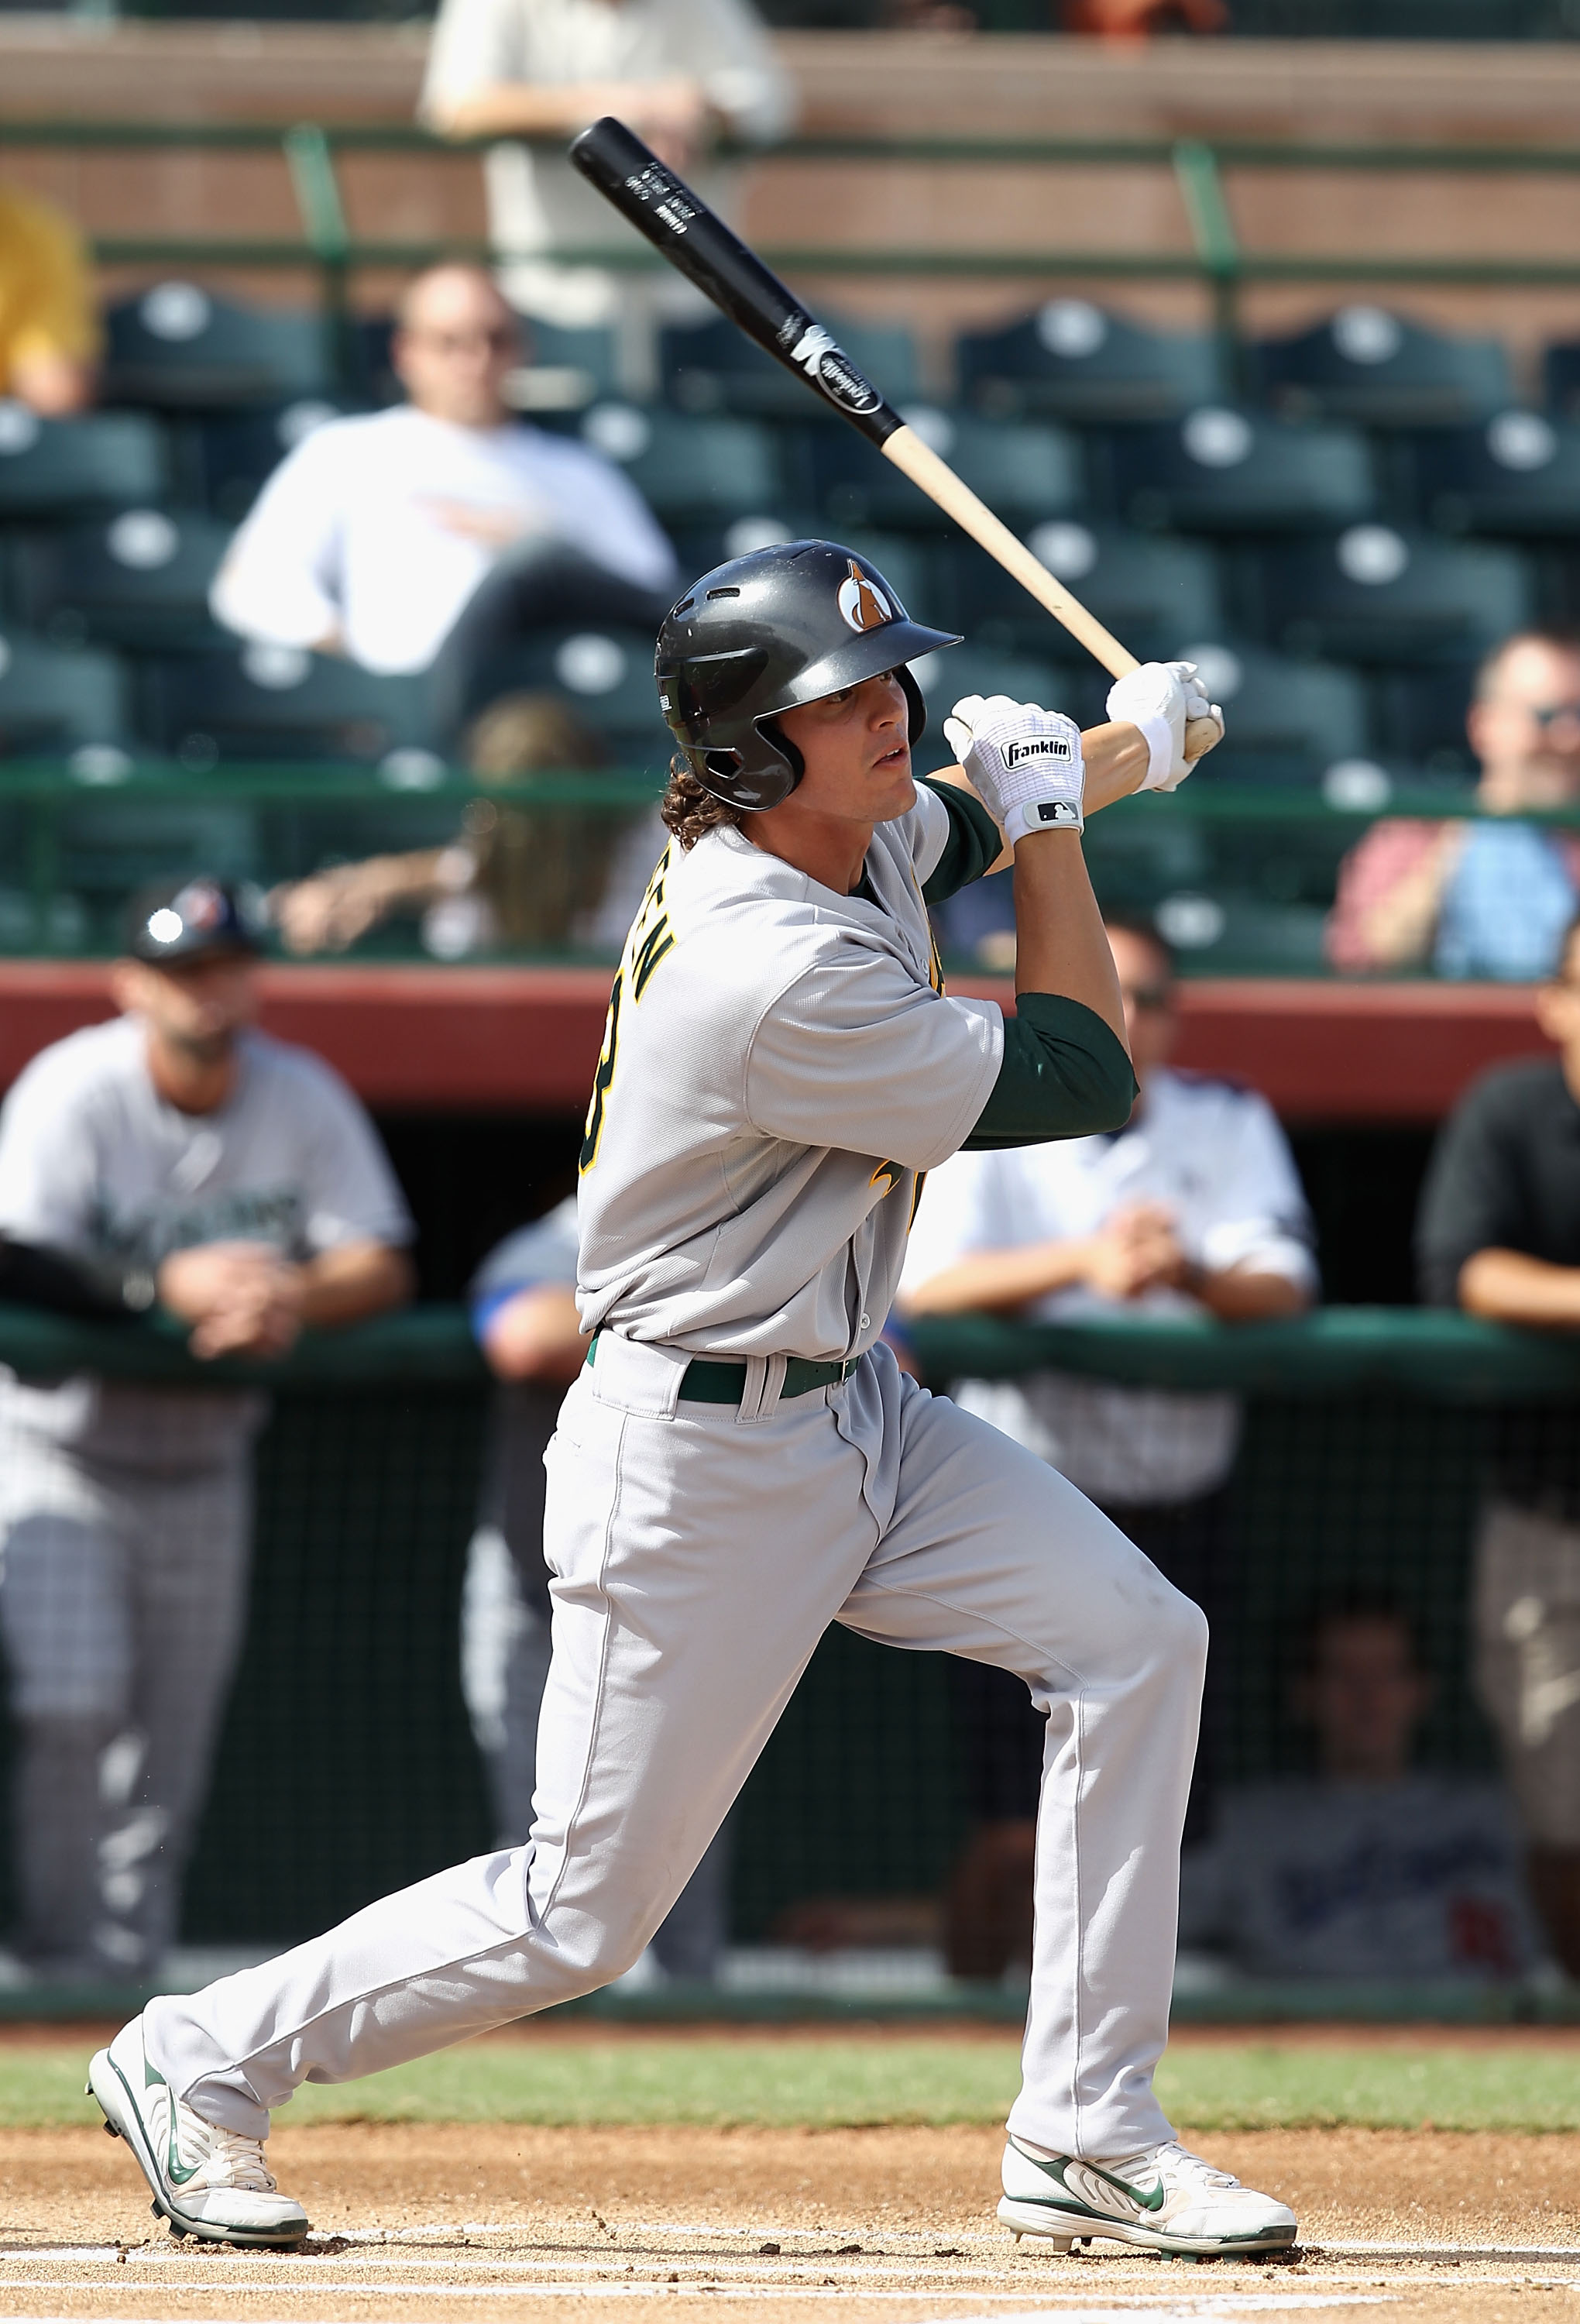 SCOTTSDALE, AZ - OCTOBER 23:  Oakland Athletics prospect Grant Green playing for the Phoenix Desert Dogs hits a single against the Scottsdale Scorpions during the AZ Fall League game at Scottsdale Stadium on October 23, 2010 in Scottsdale, Arizona.  (Phot